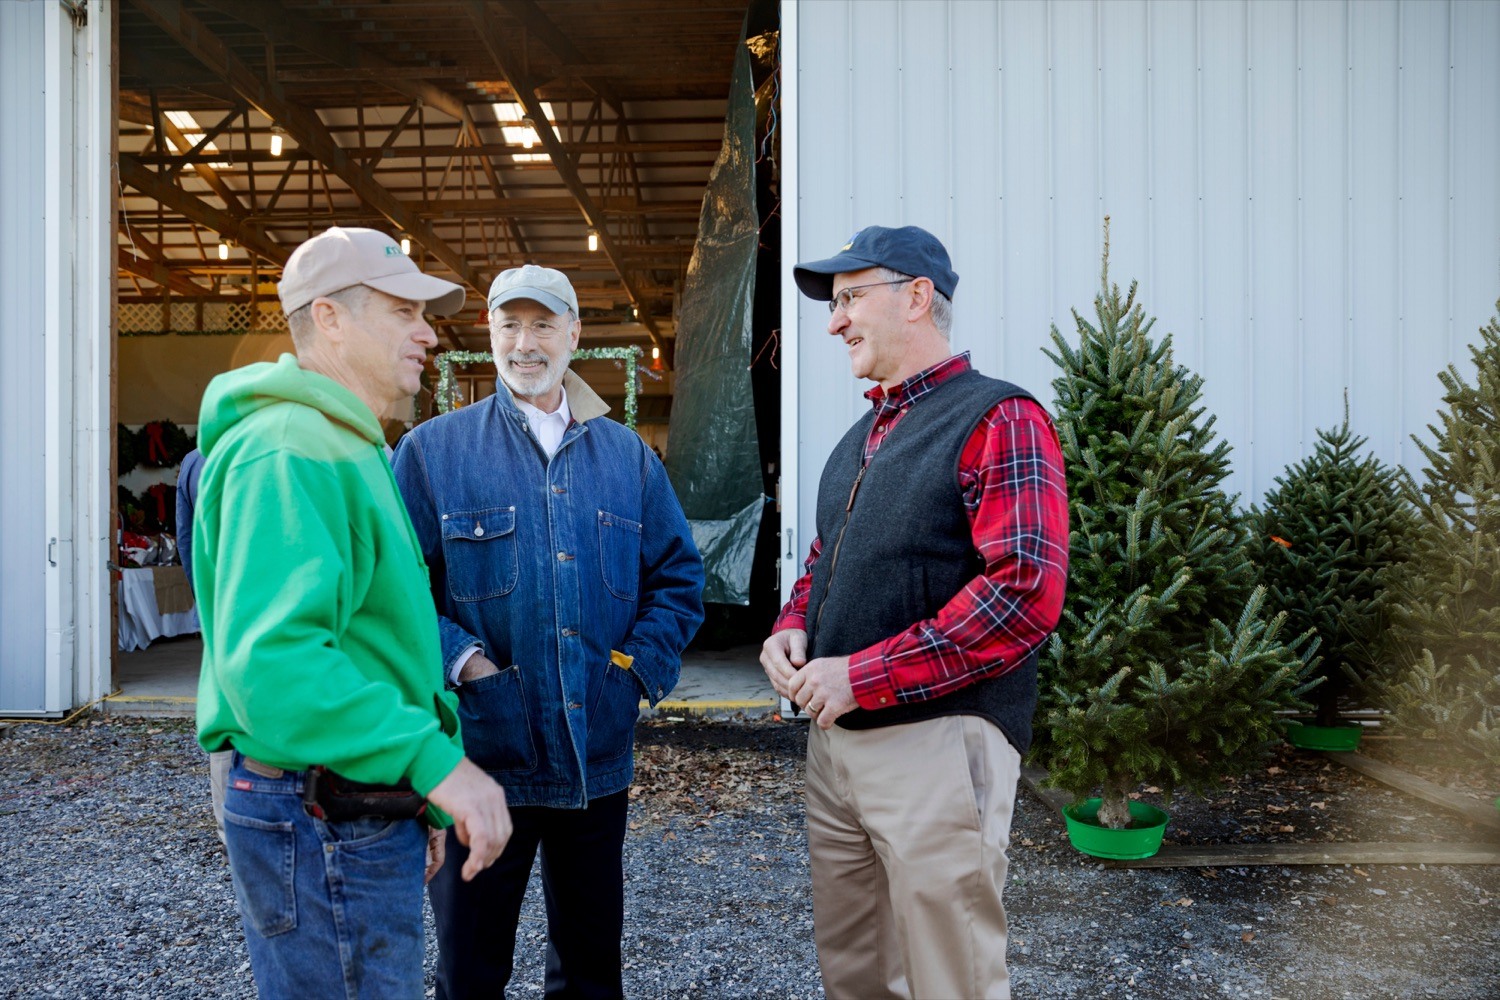 "<a href=""http://filesource.abacast.com/commonwealthofpa/photo/17615_GOV_AGRIC_Christmas_Trees_NK_015.JPG"" target=""_blank"">⇣ Download Photo<br></a>Pennsylvania Governor Tom Wolf, center, Pennsylvania Agriculture Secretary Russell Redding, right and Mark McCurdy, owner of McCurdy's Tree Farm & Landscaping, talk together on Monday, November 25, 2019."